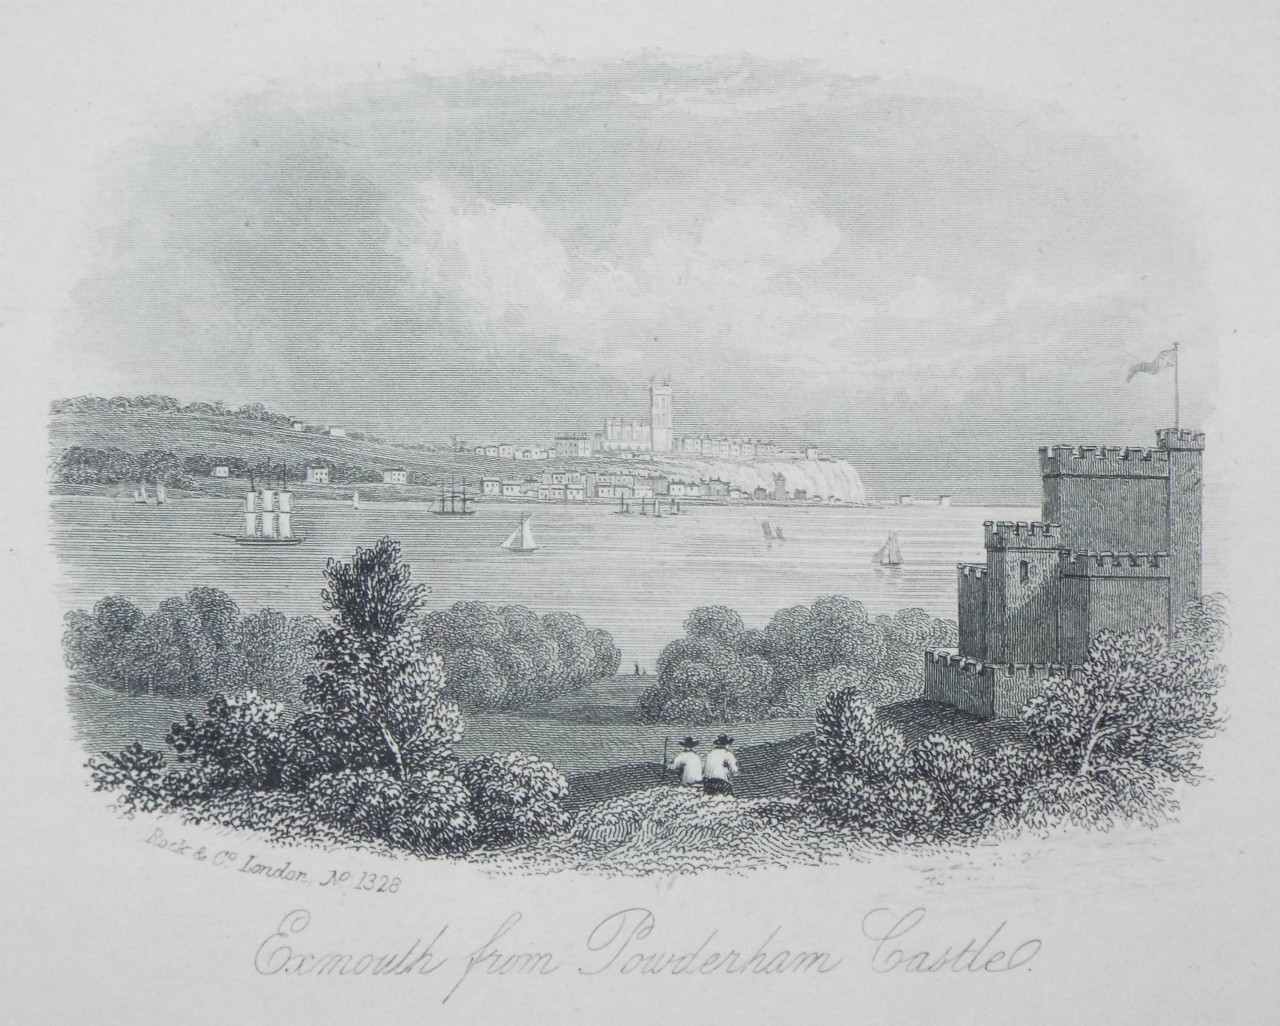 Steel Vignette - Exmouth from Powderham Castle. - Rock